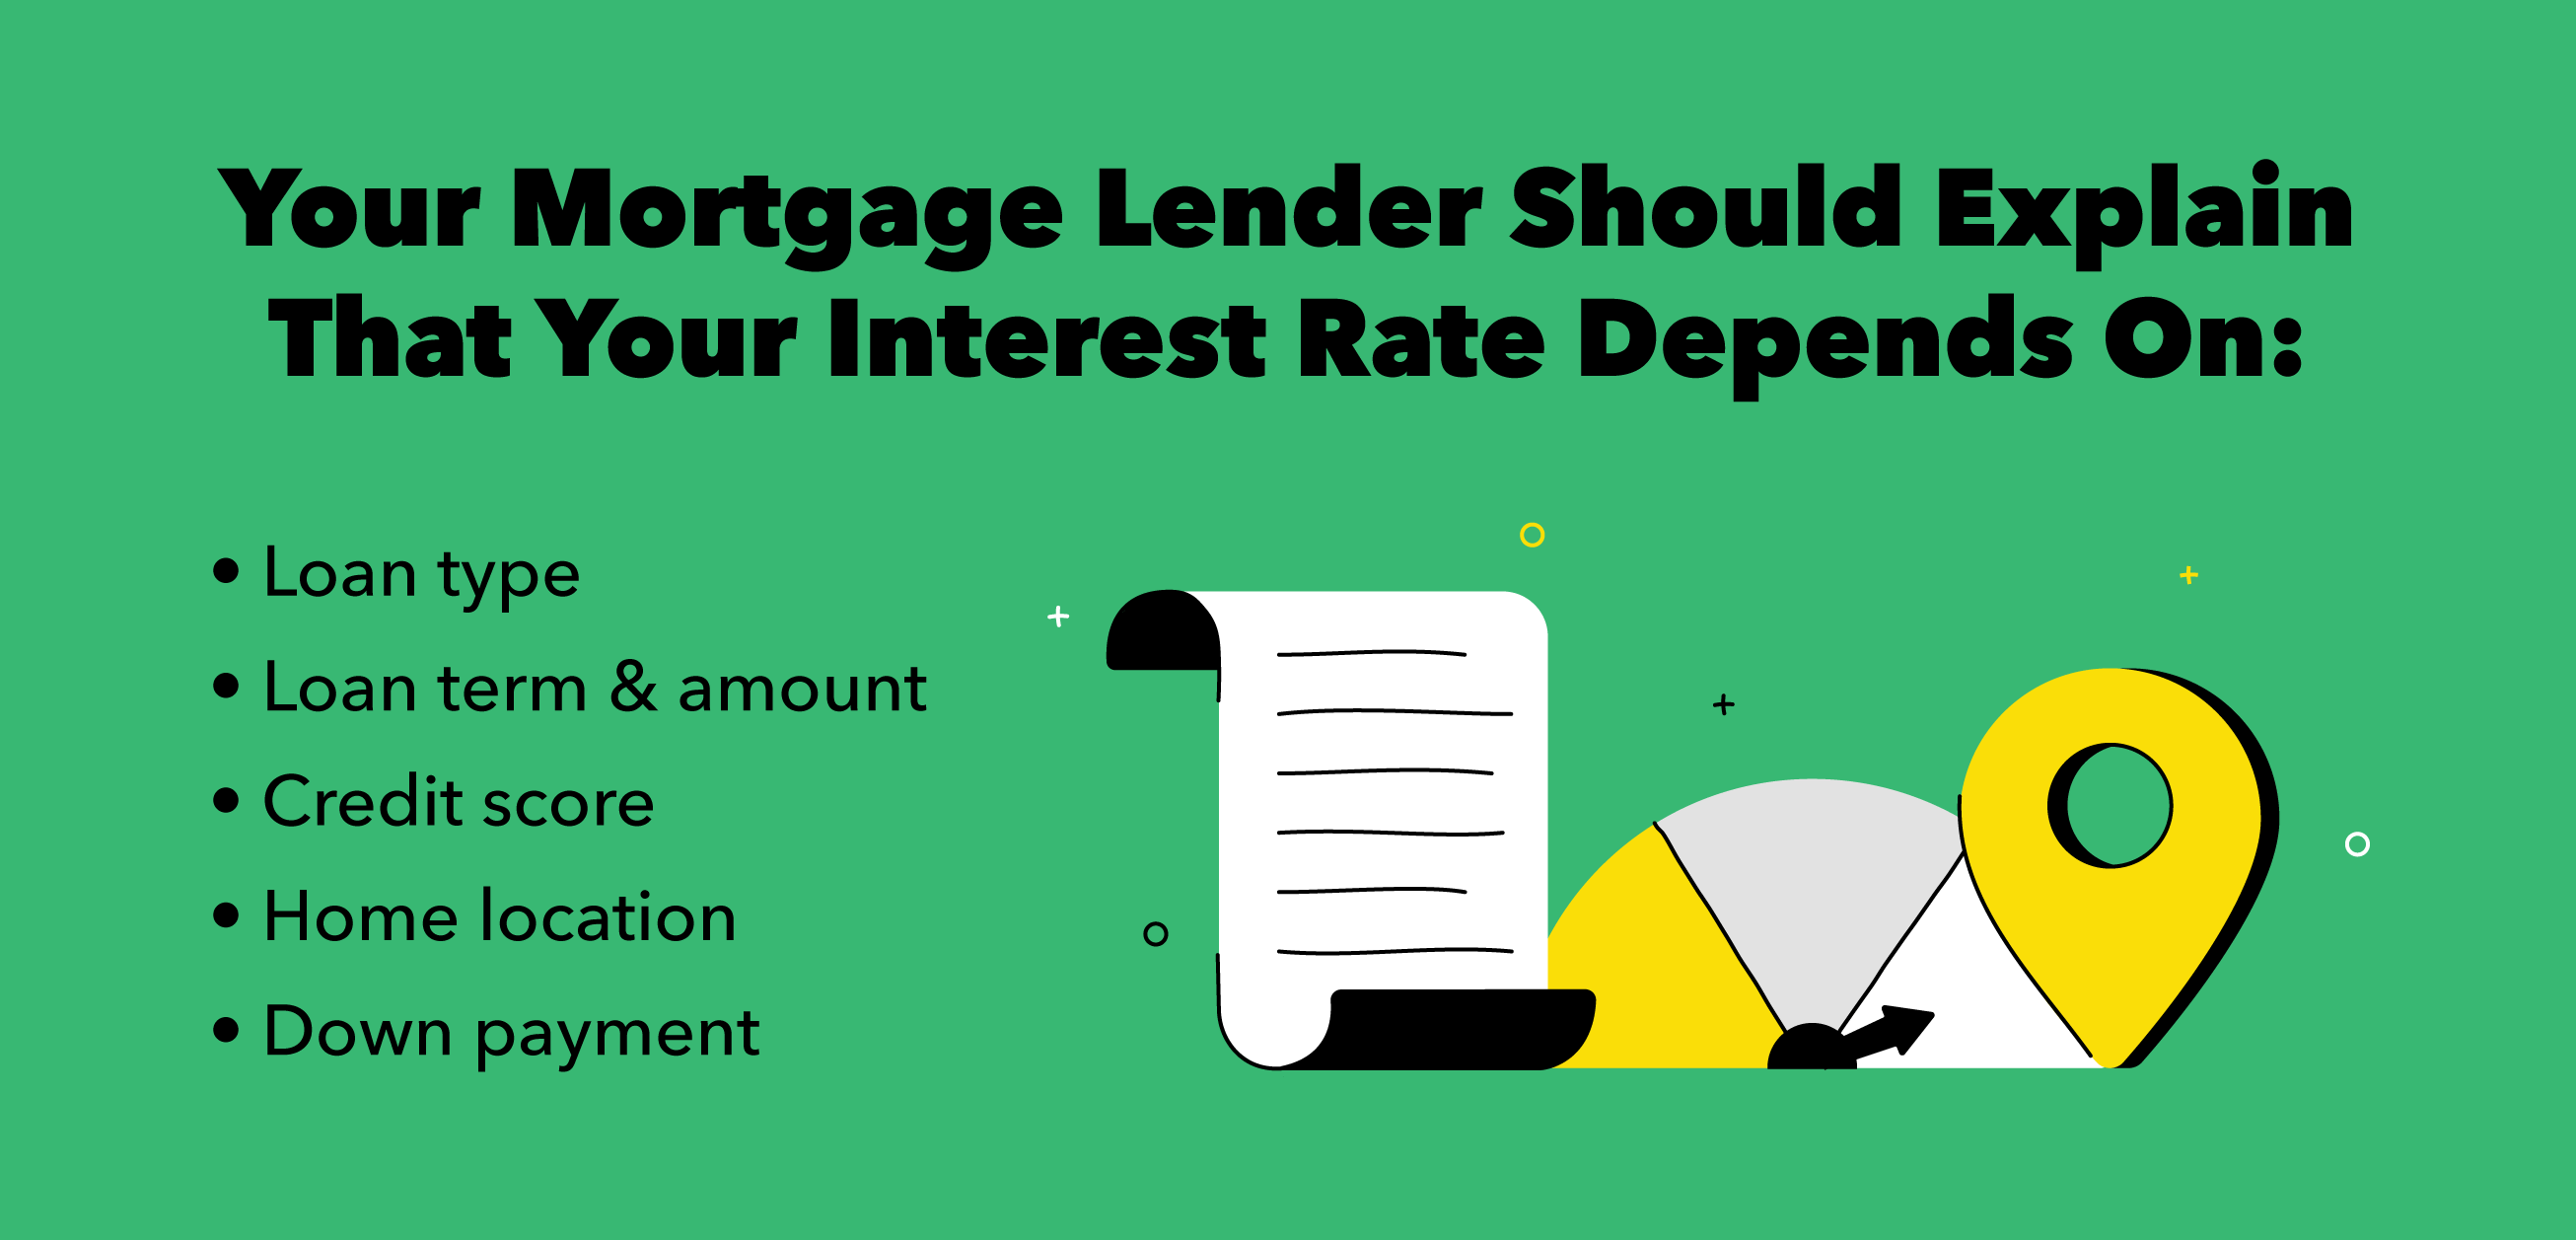 your mortgage lender should explain interest rate depends on